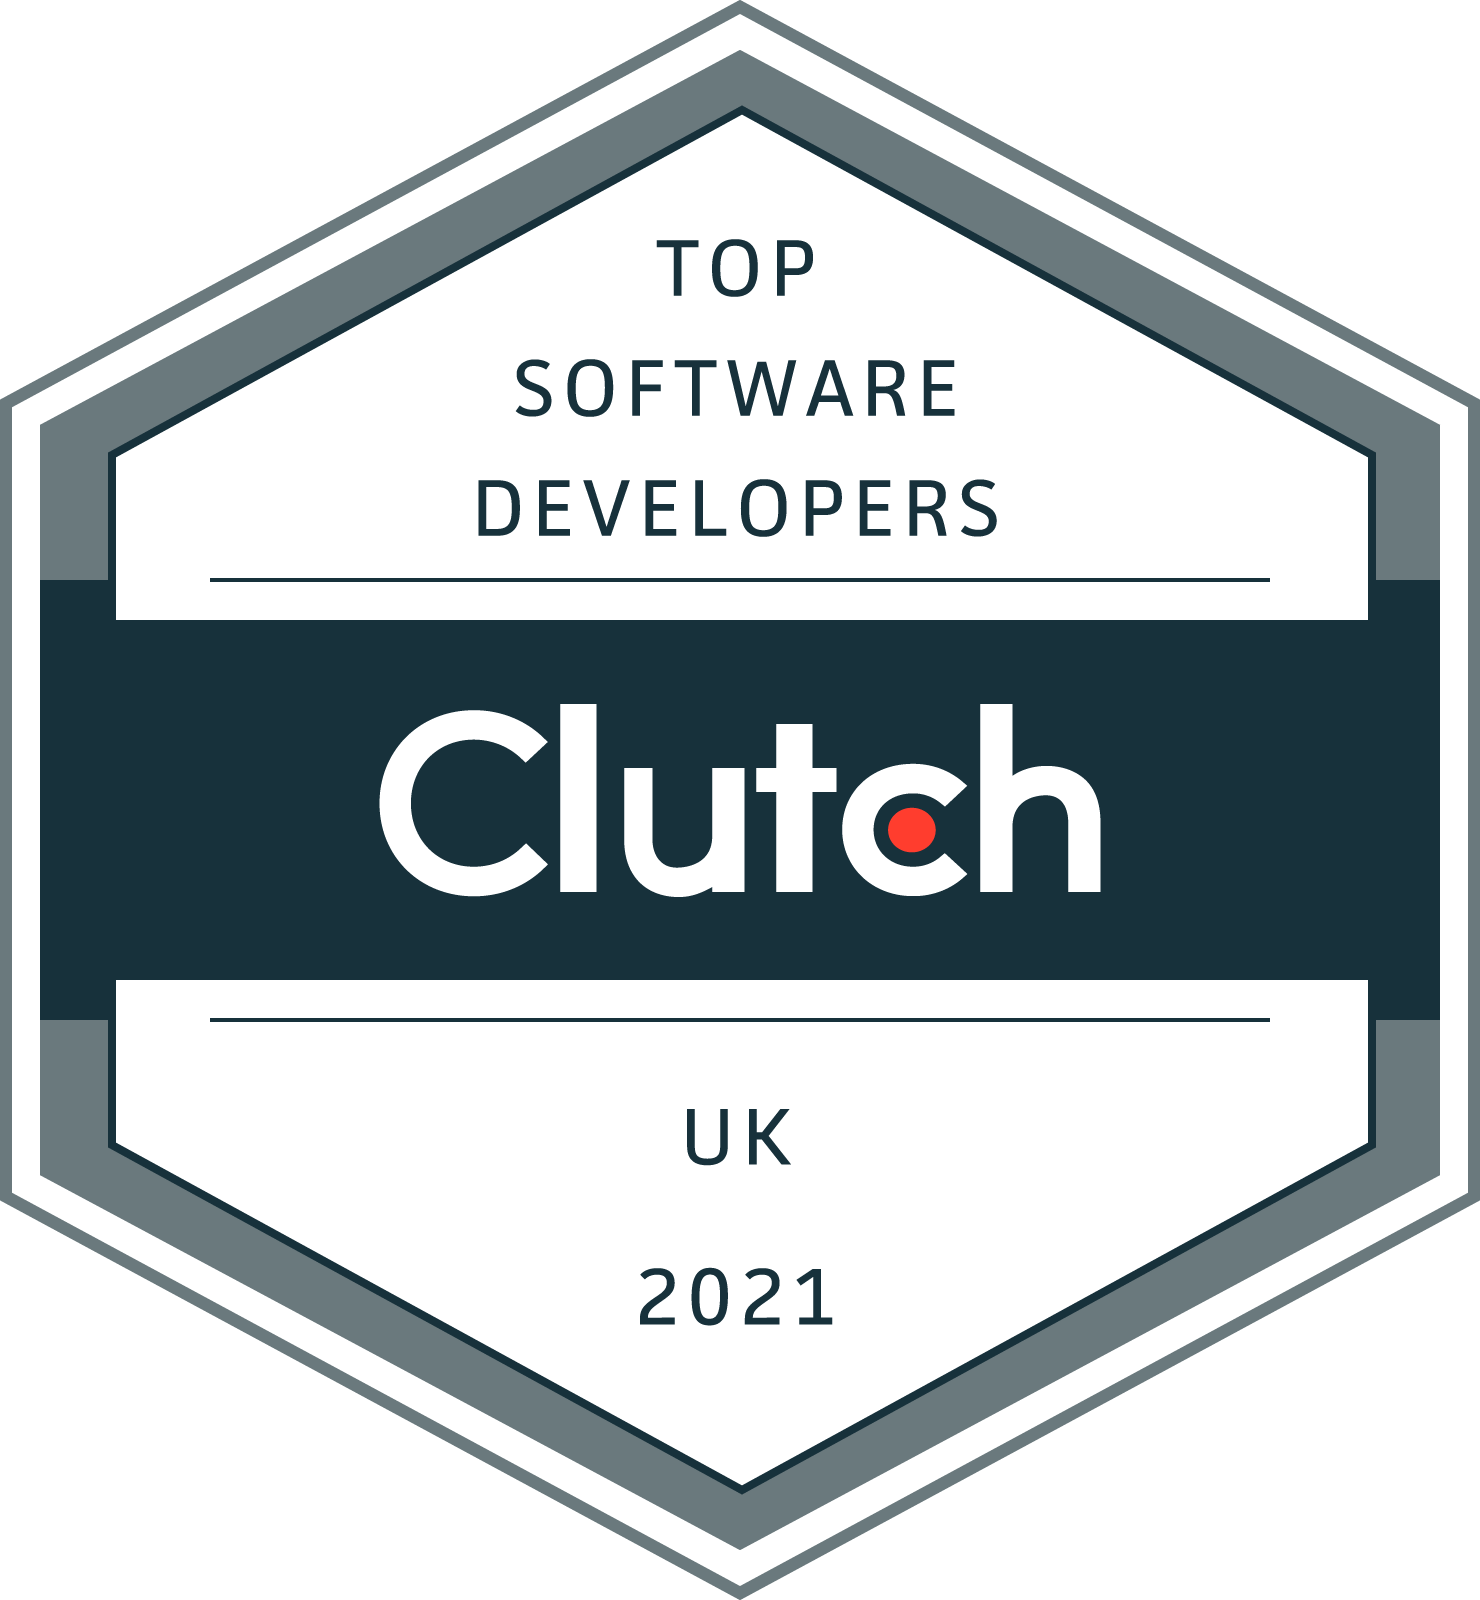 TOP B2B Companies in UK - Development & IT Services